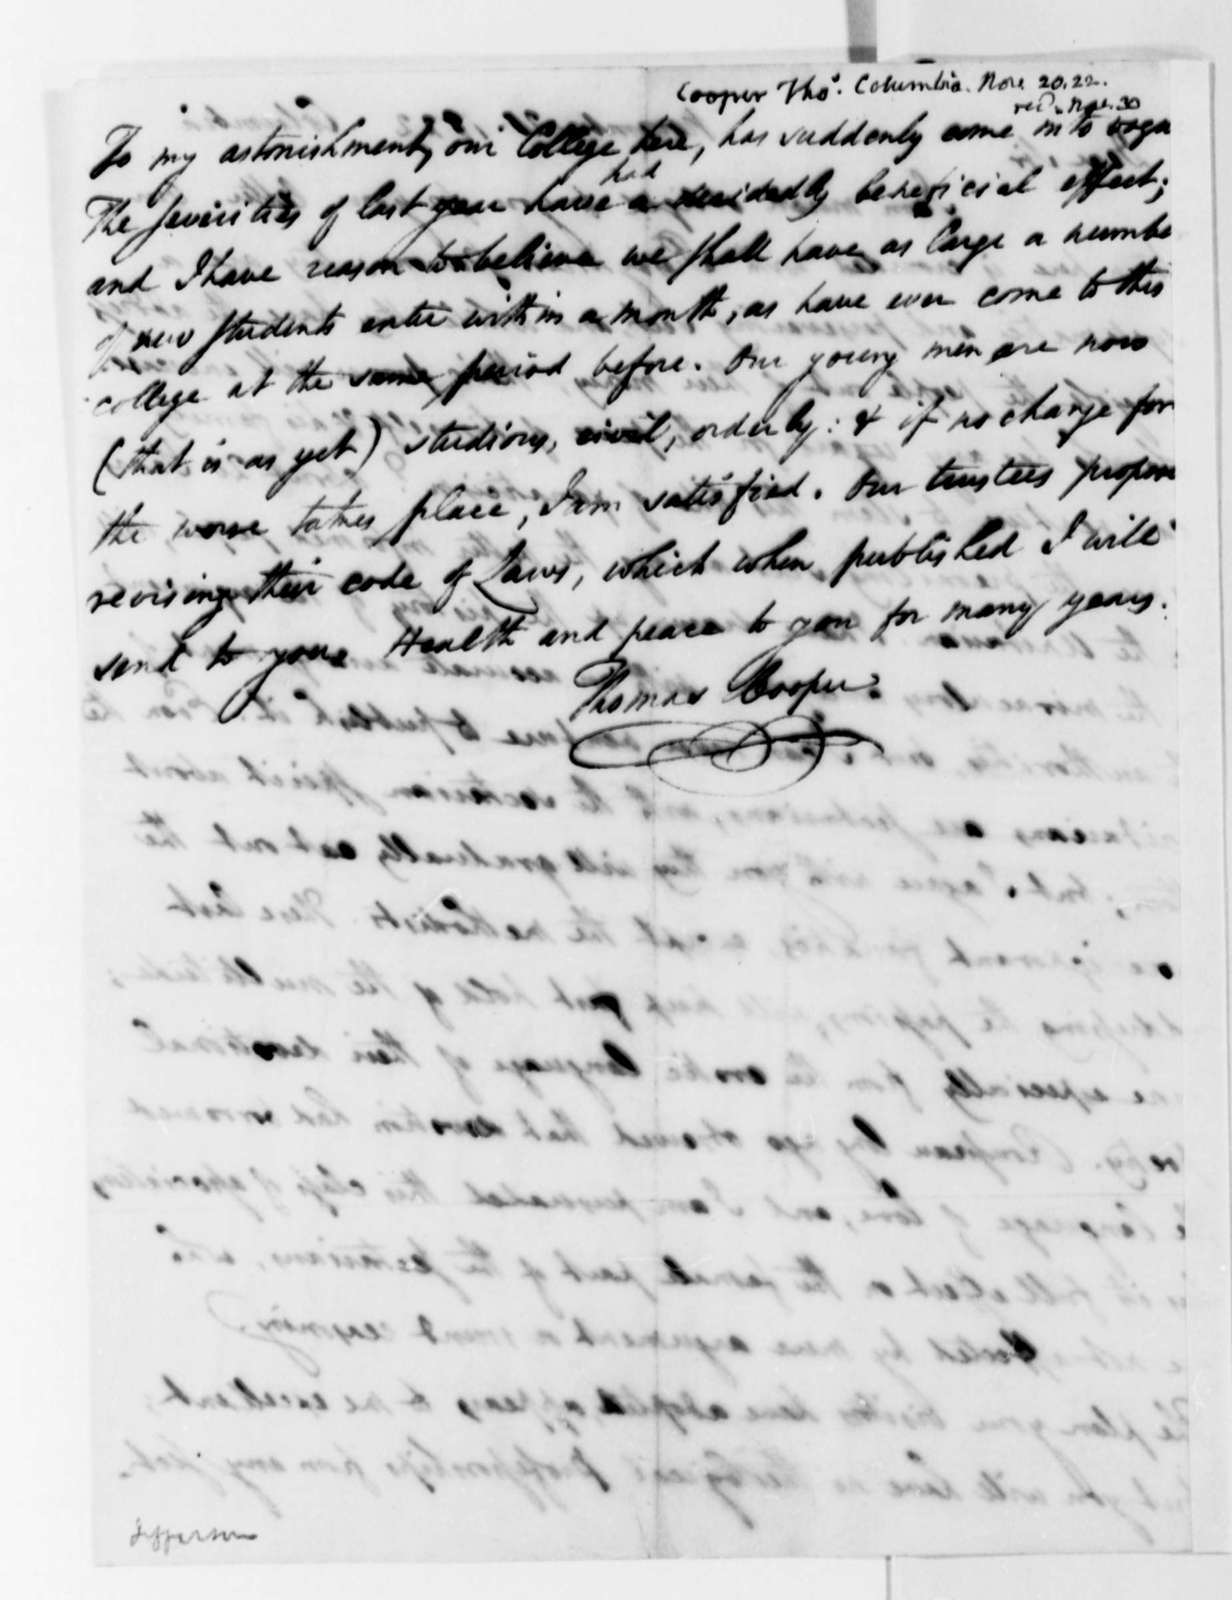 Thomas Cooper to Thomas Jefferson, November 20, 1822